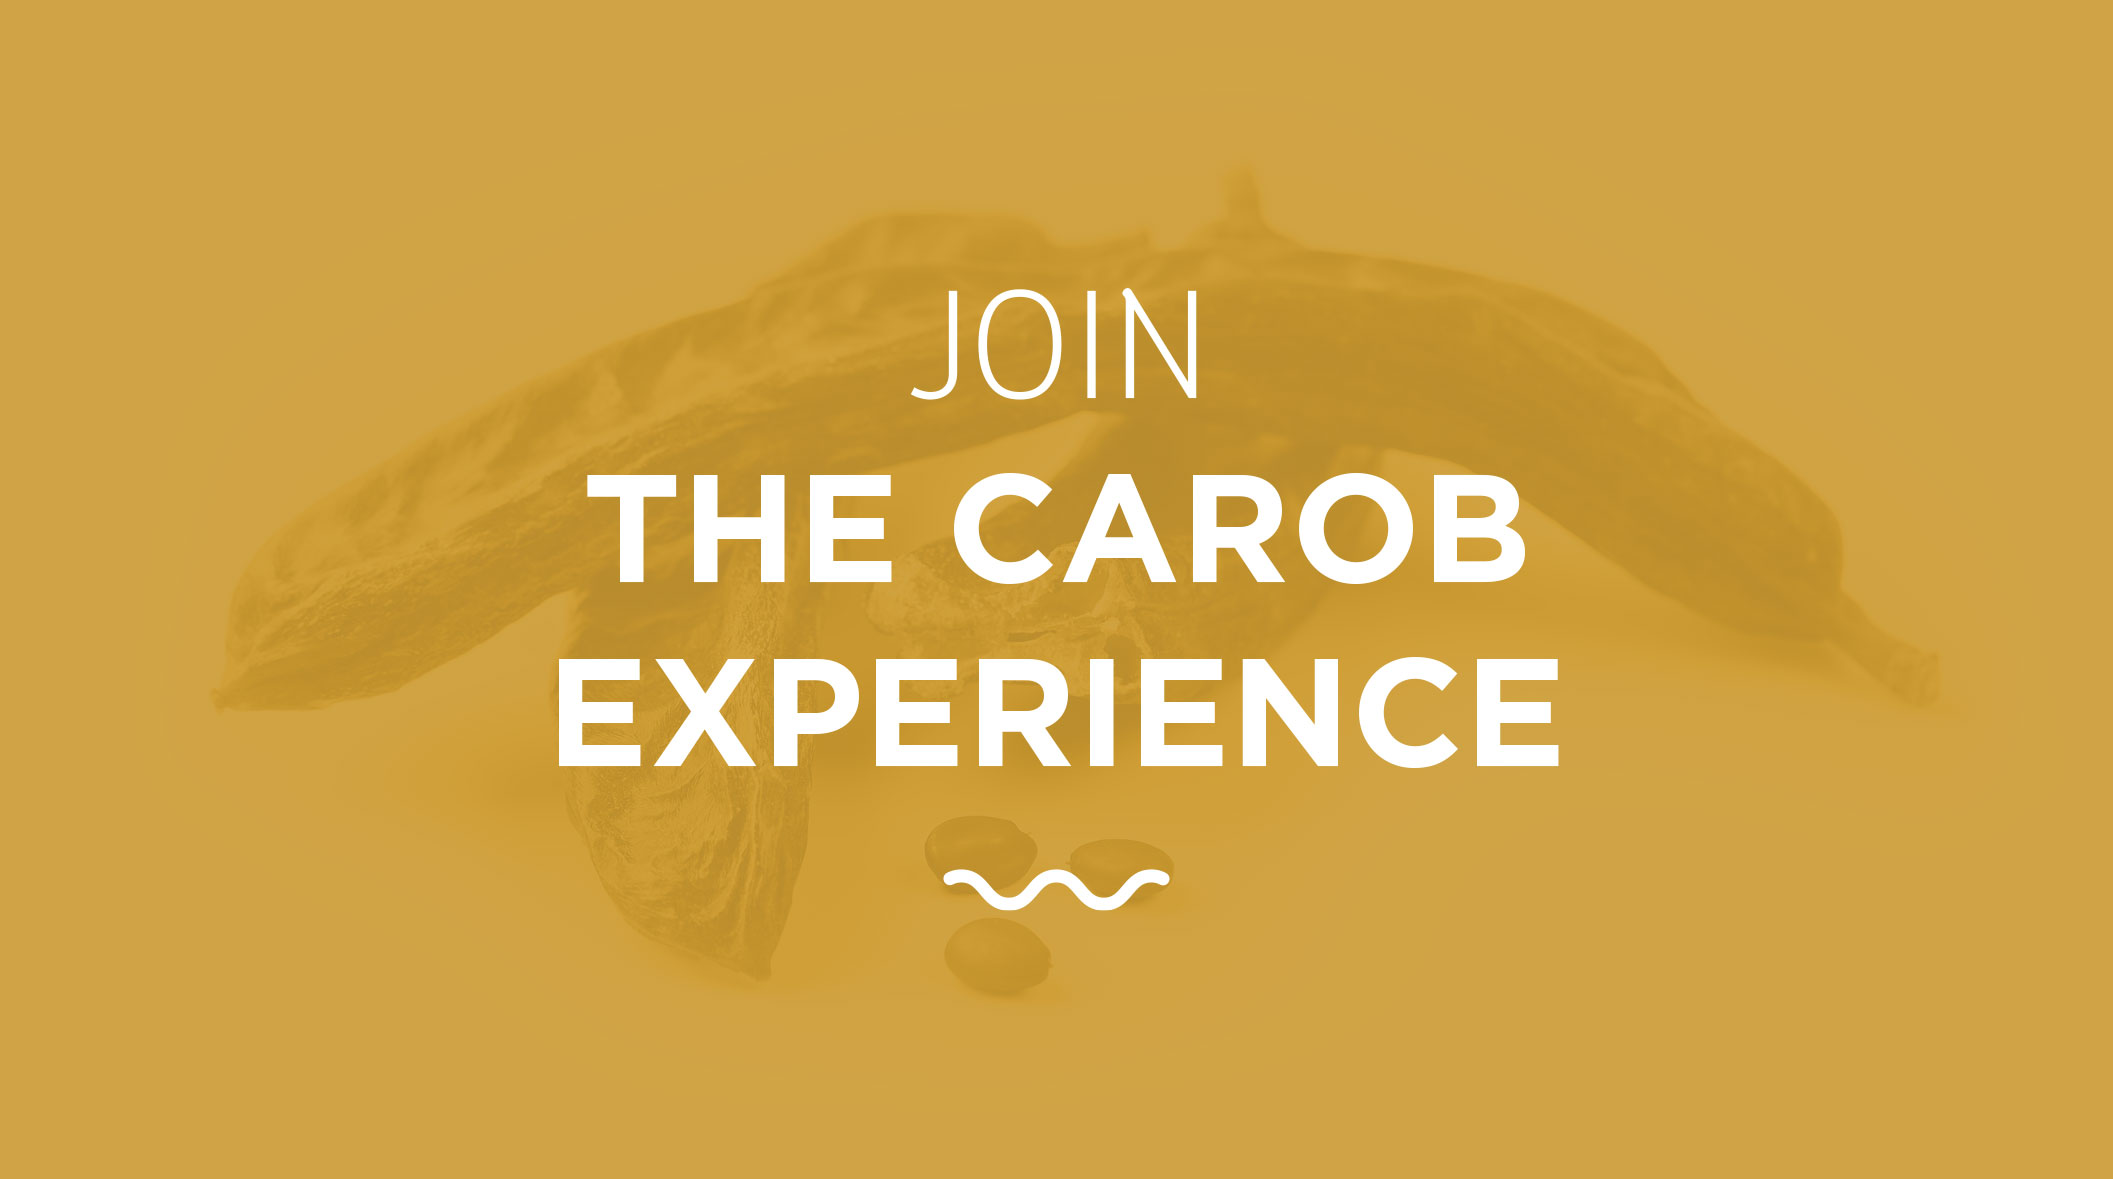 JOIN THE CAROB EXPERIENCE